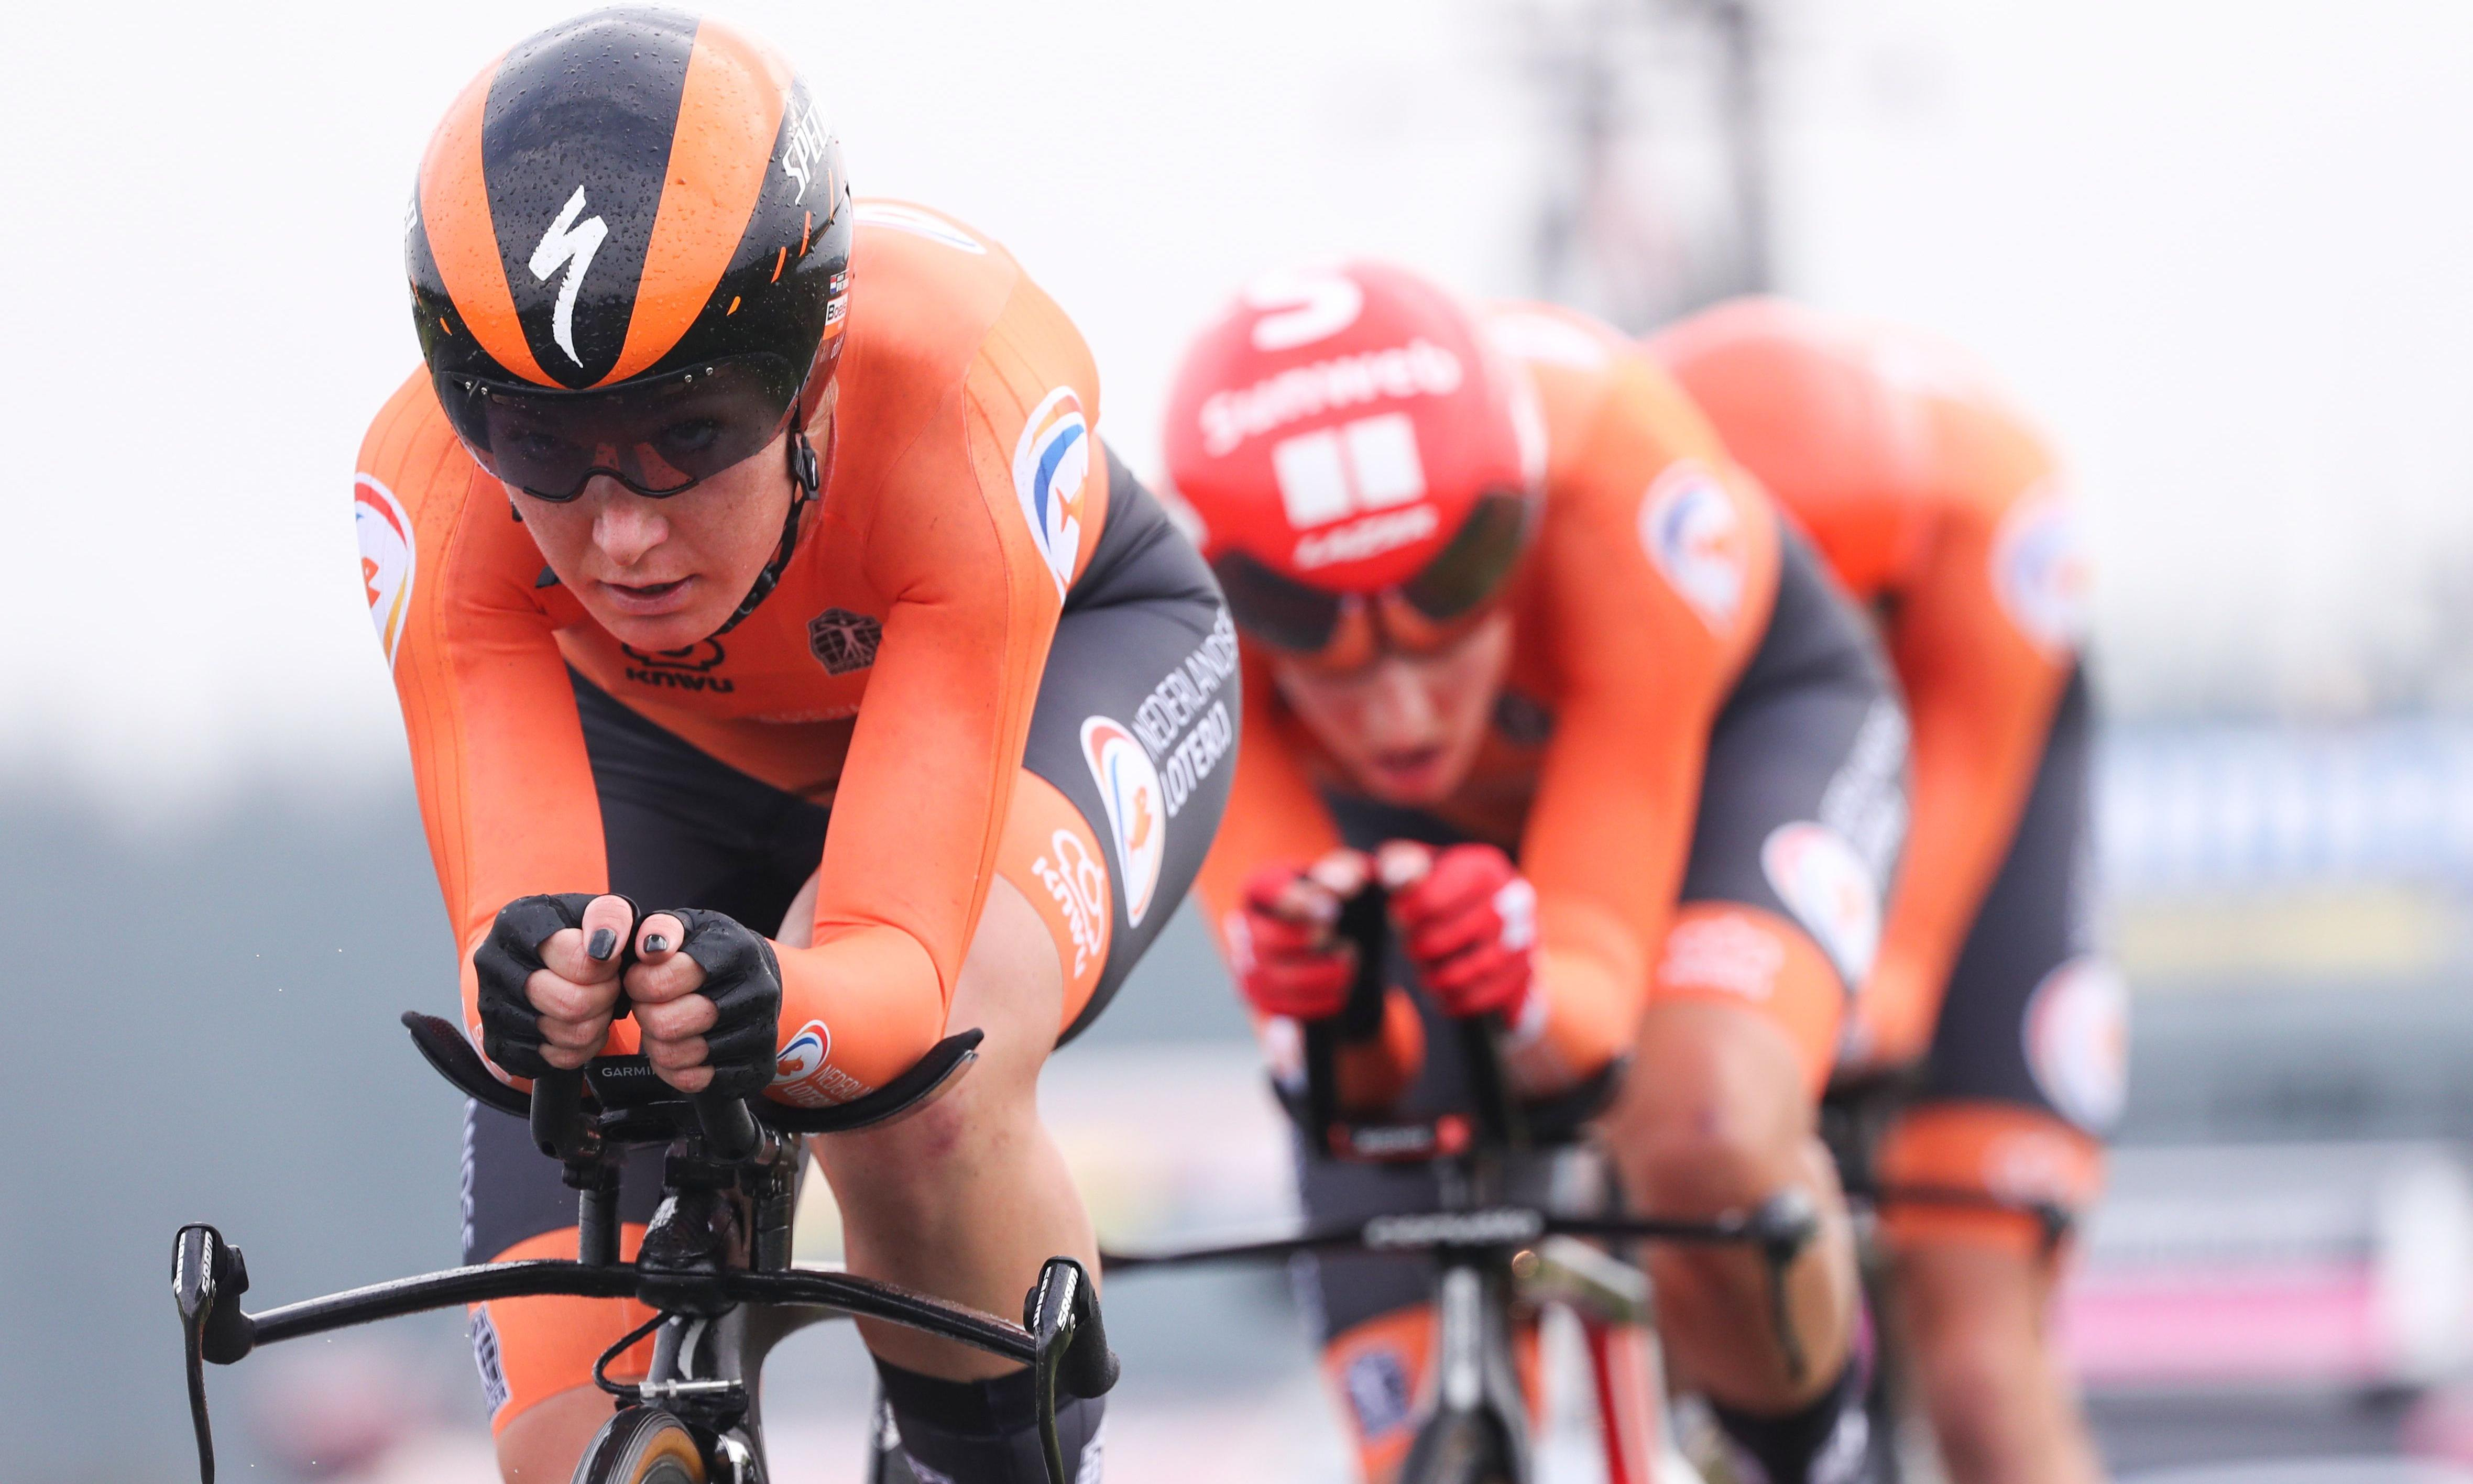 Dutch challenge looms large to block path of local hero Lizzie Deignan